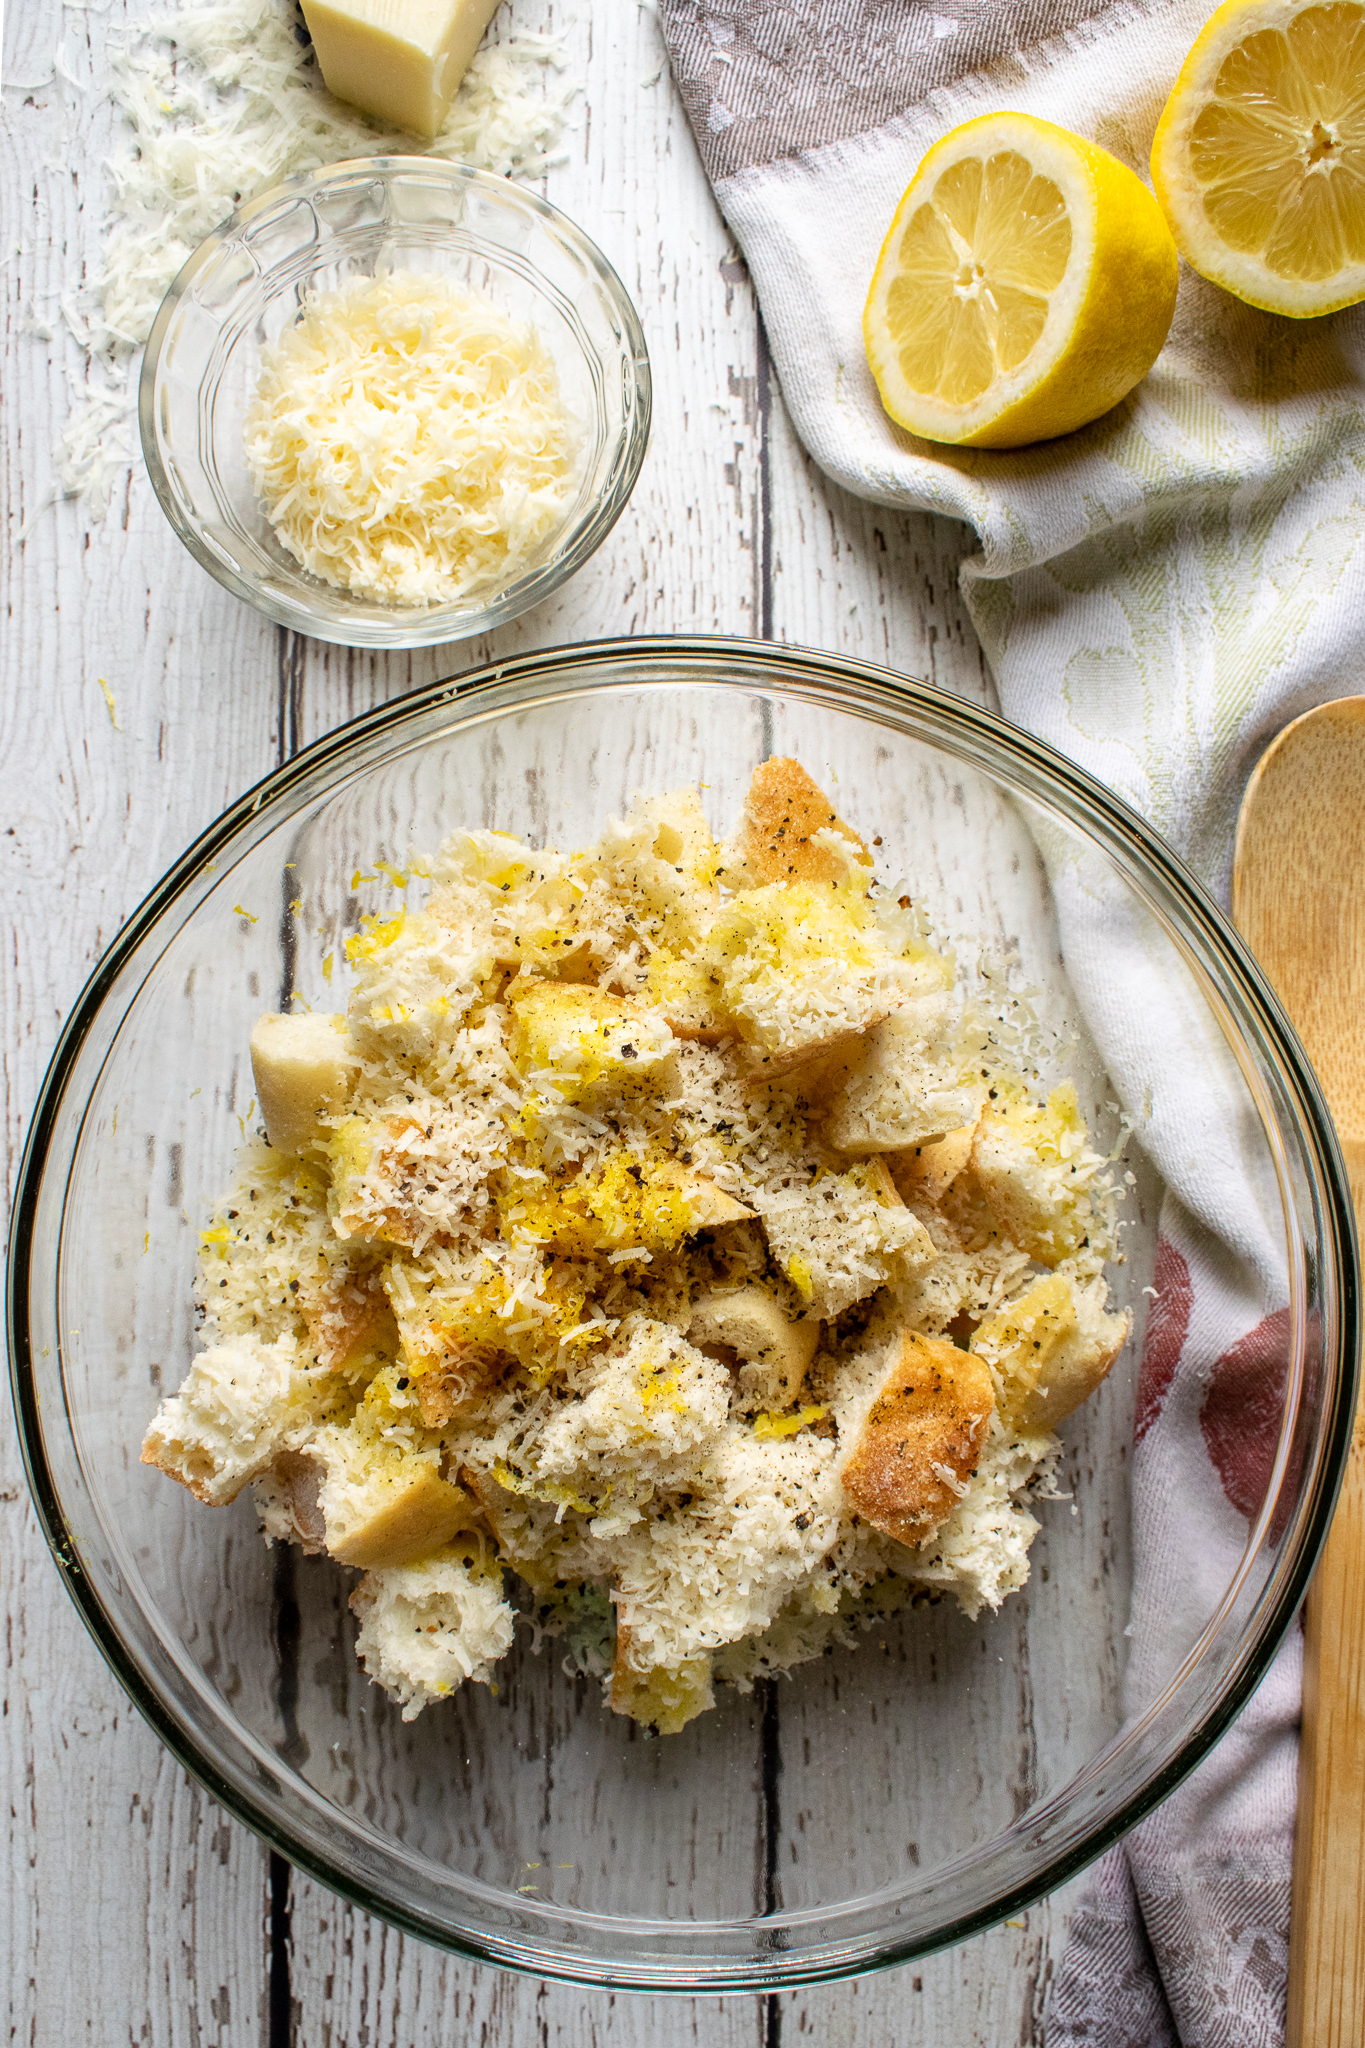 A bowl filled with cubed ciabatta bread, lemon zest, minced garlic, grated parmesan, olive oil, salt and pepper. Lemon slices and grated Parmesan cheese are next to the bowl.